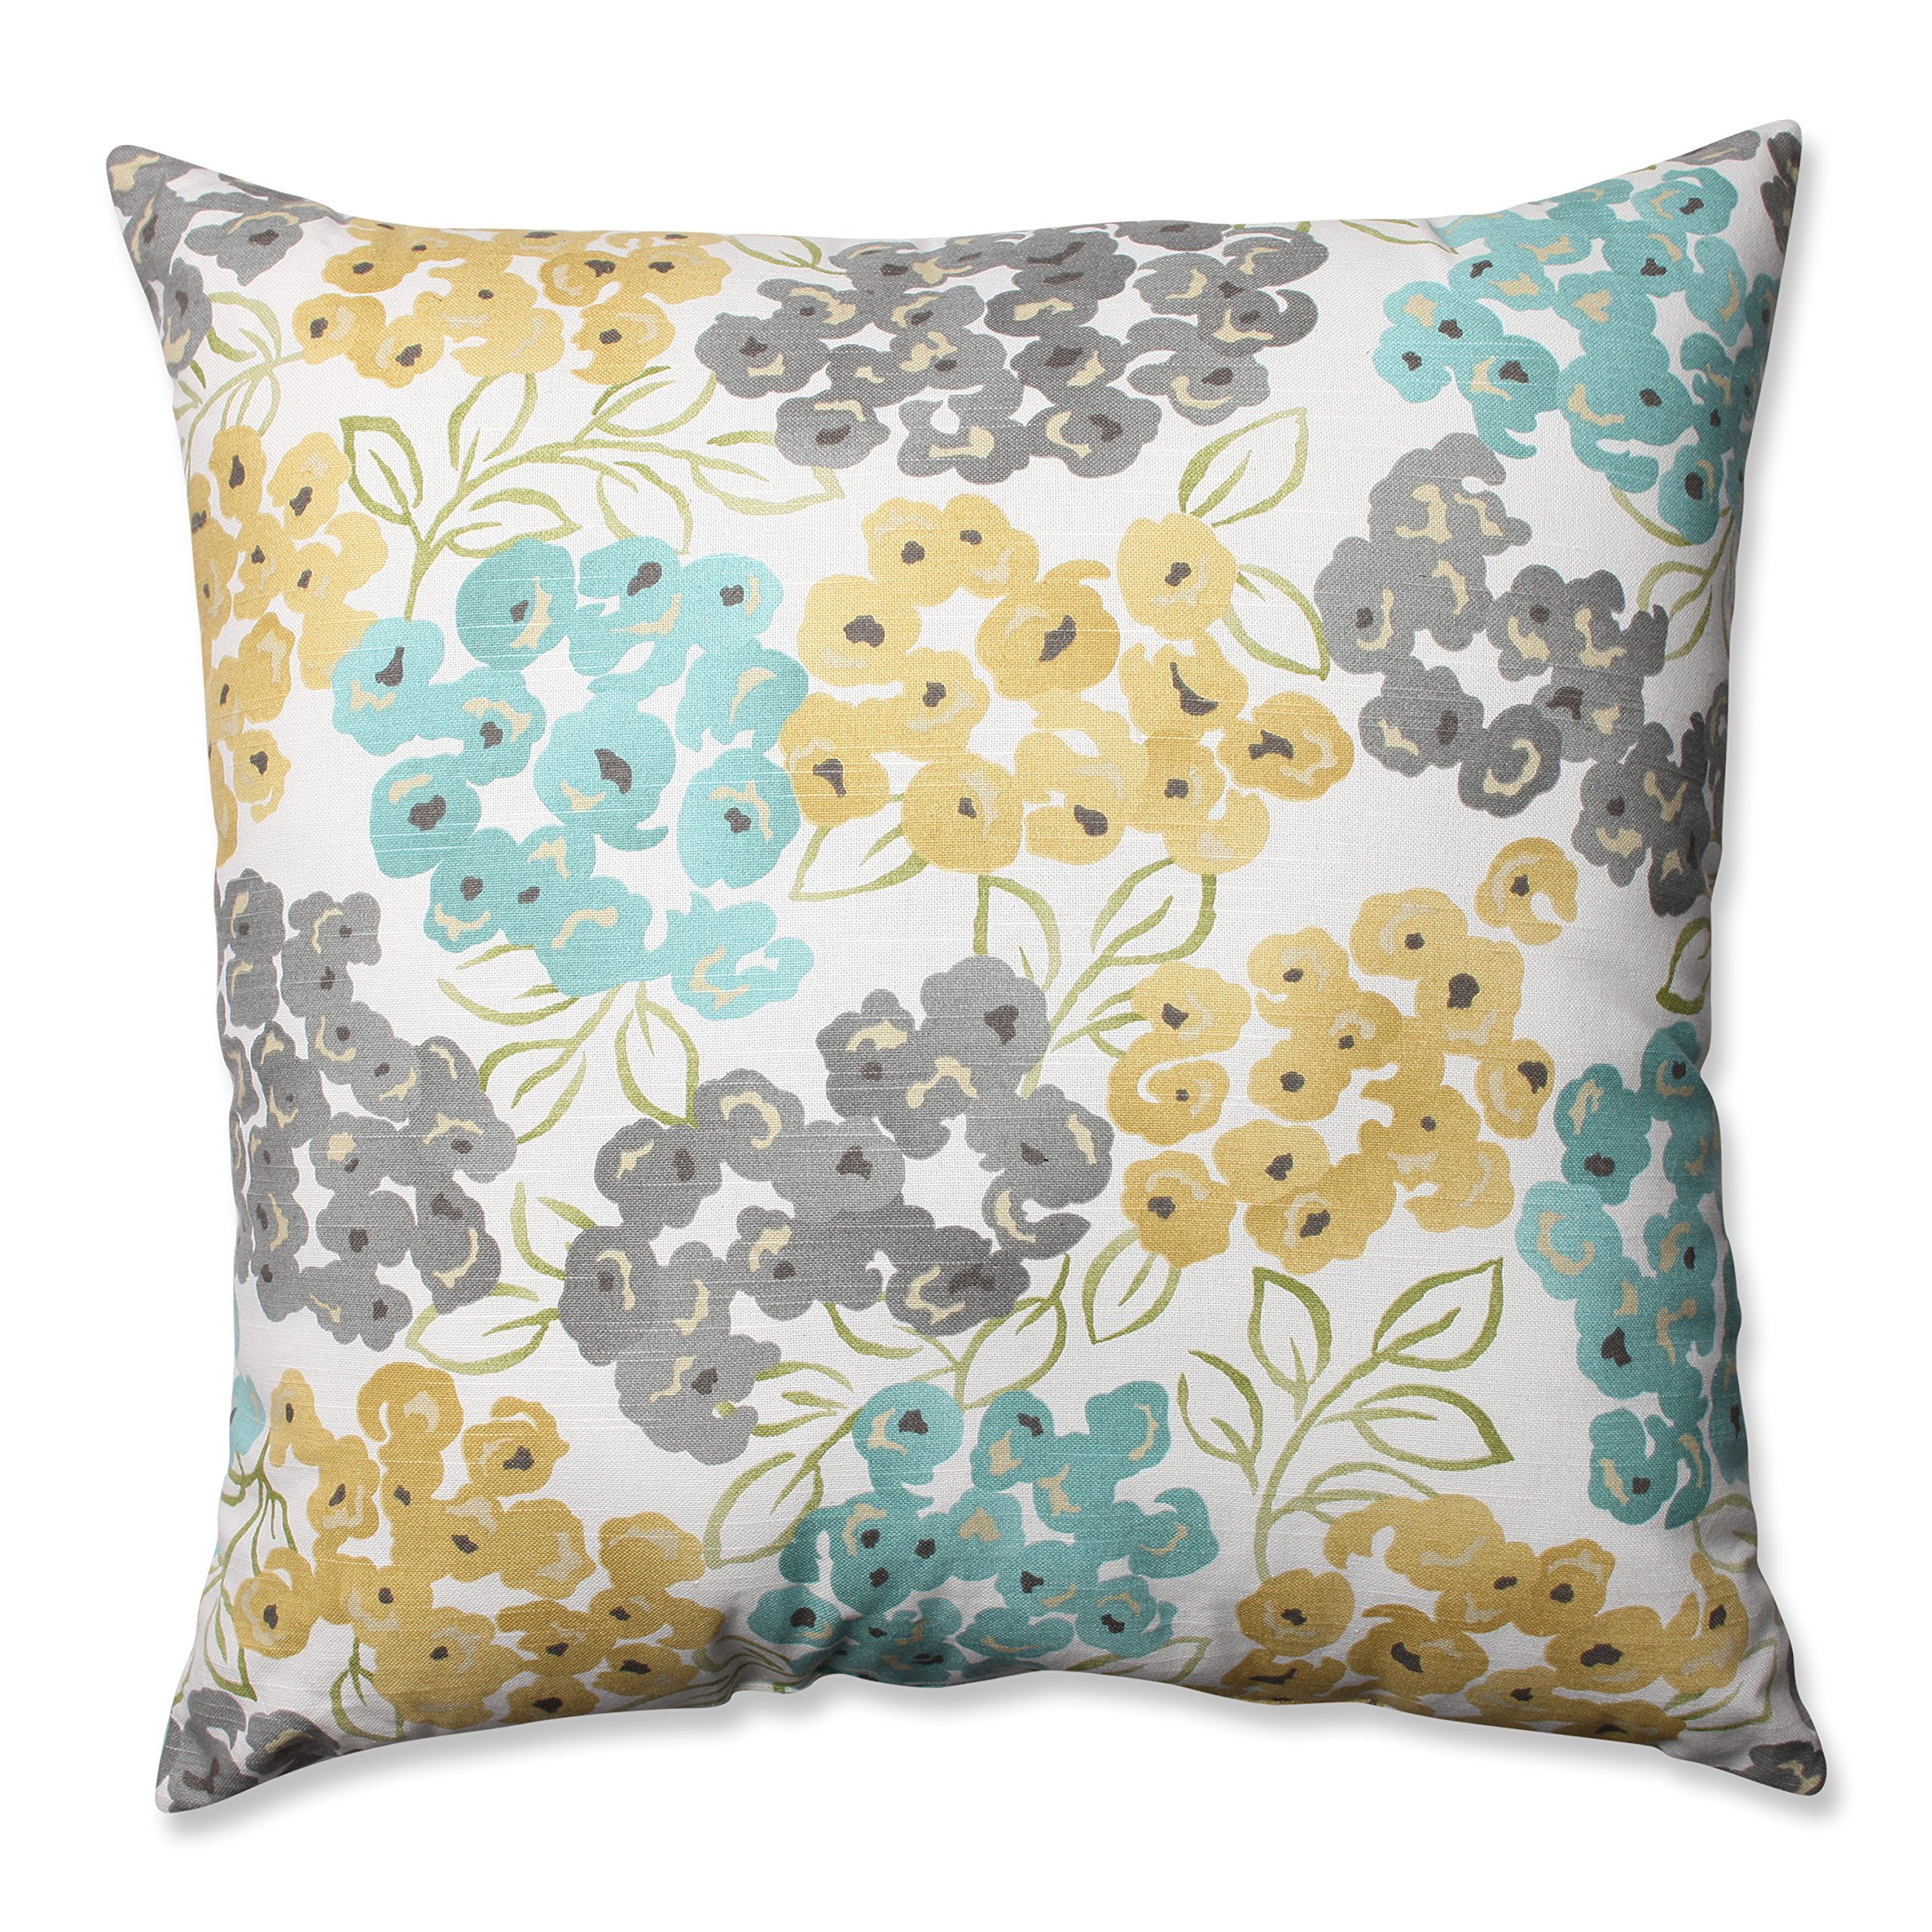 Pillow Perfect Luxury Floral Pool Floor Pillow, 24.5-Inch